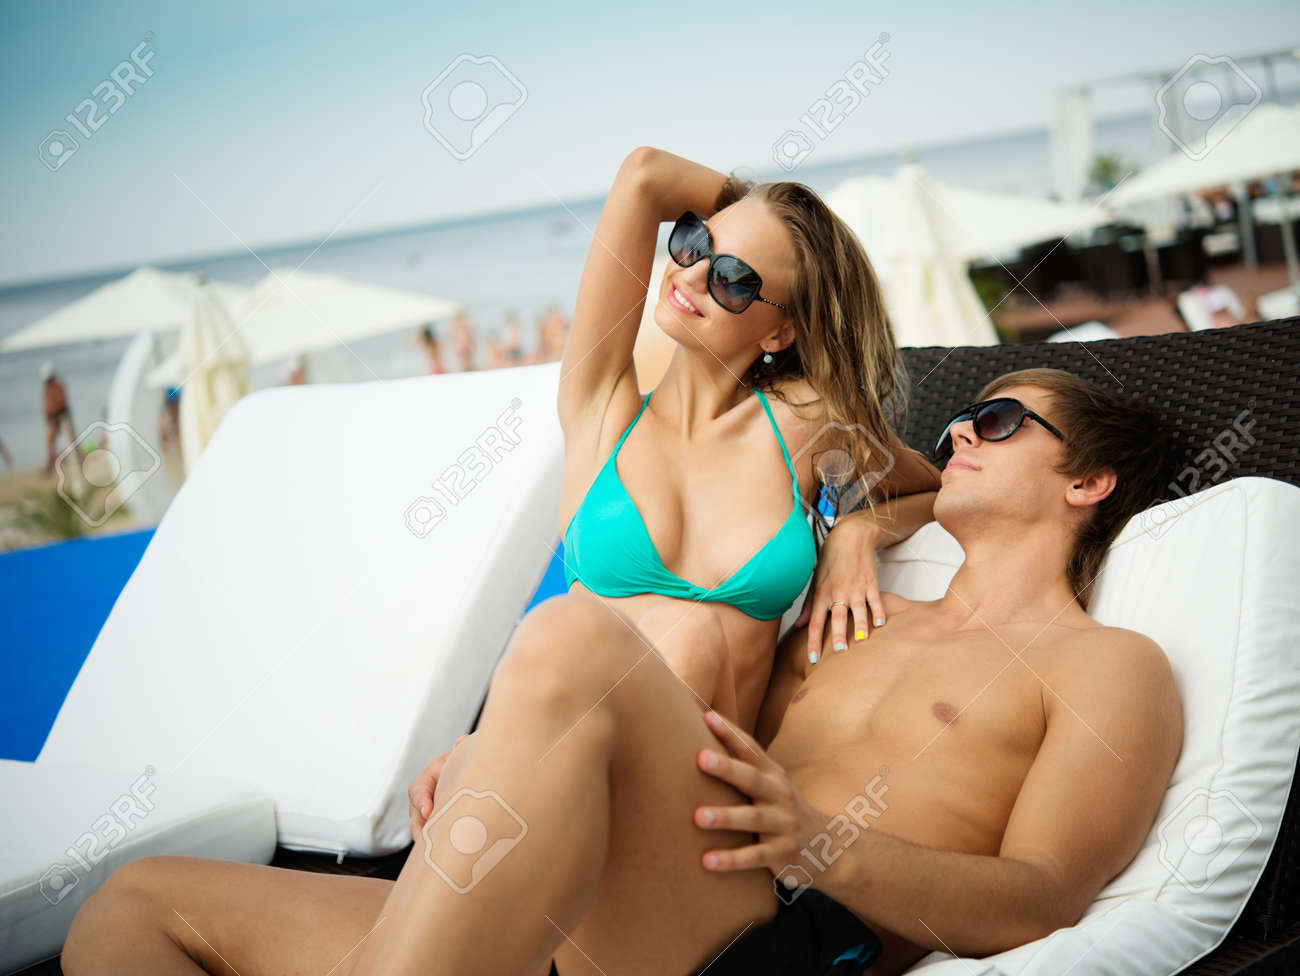 Sexy young couple relaxing on a beach bed Stock Photo - 21131173